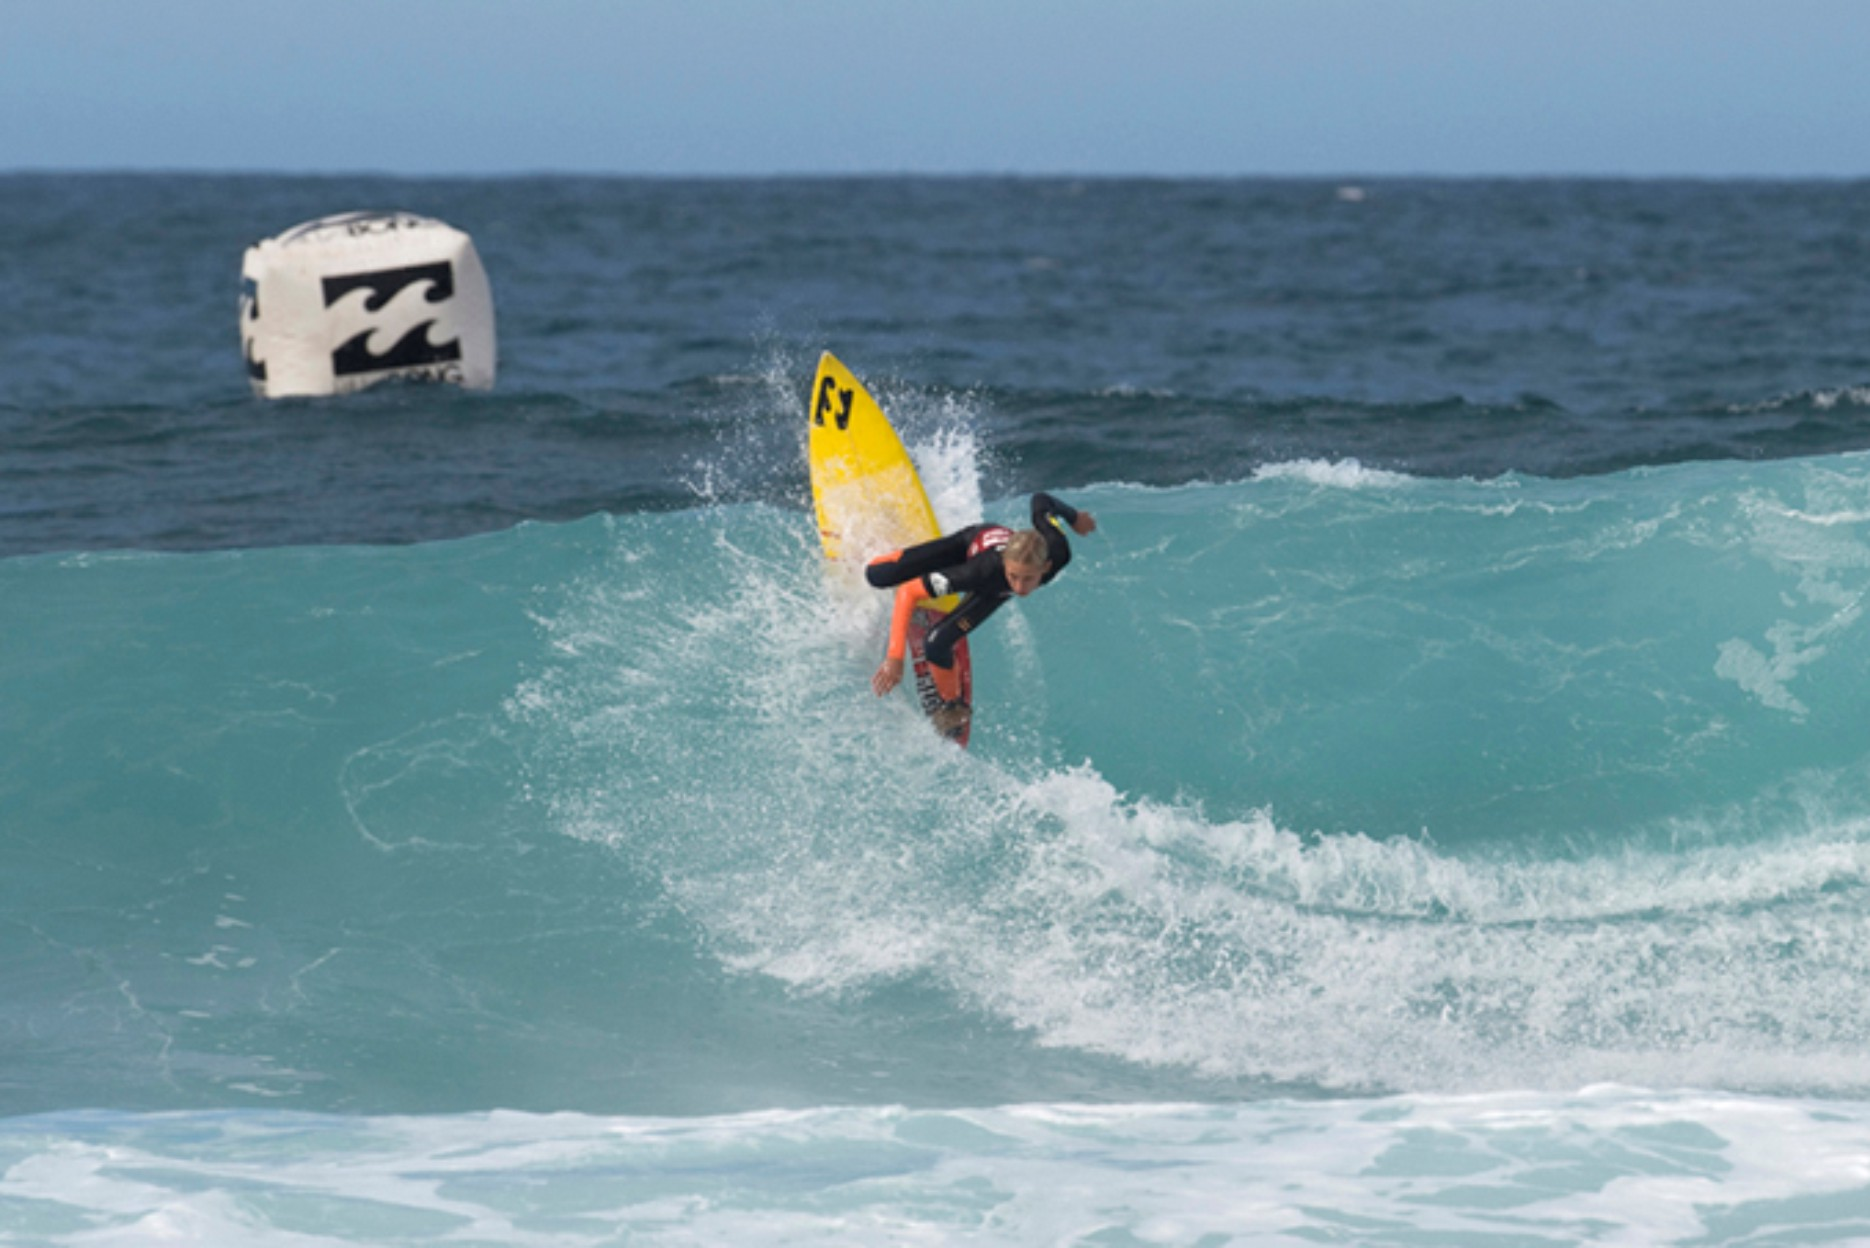 Max Elkington surfing his way to the win in the U16 Boys final at the Billabong Junior Pro